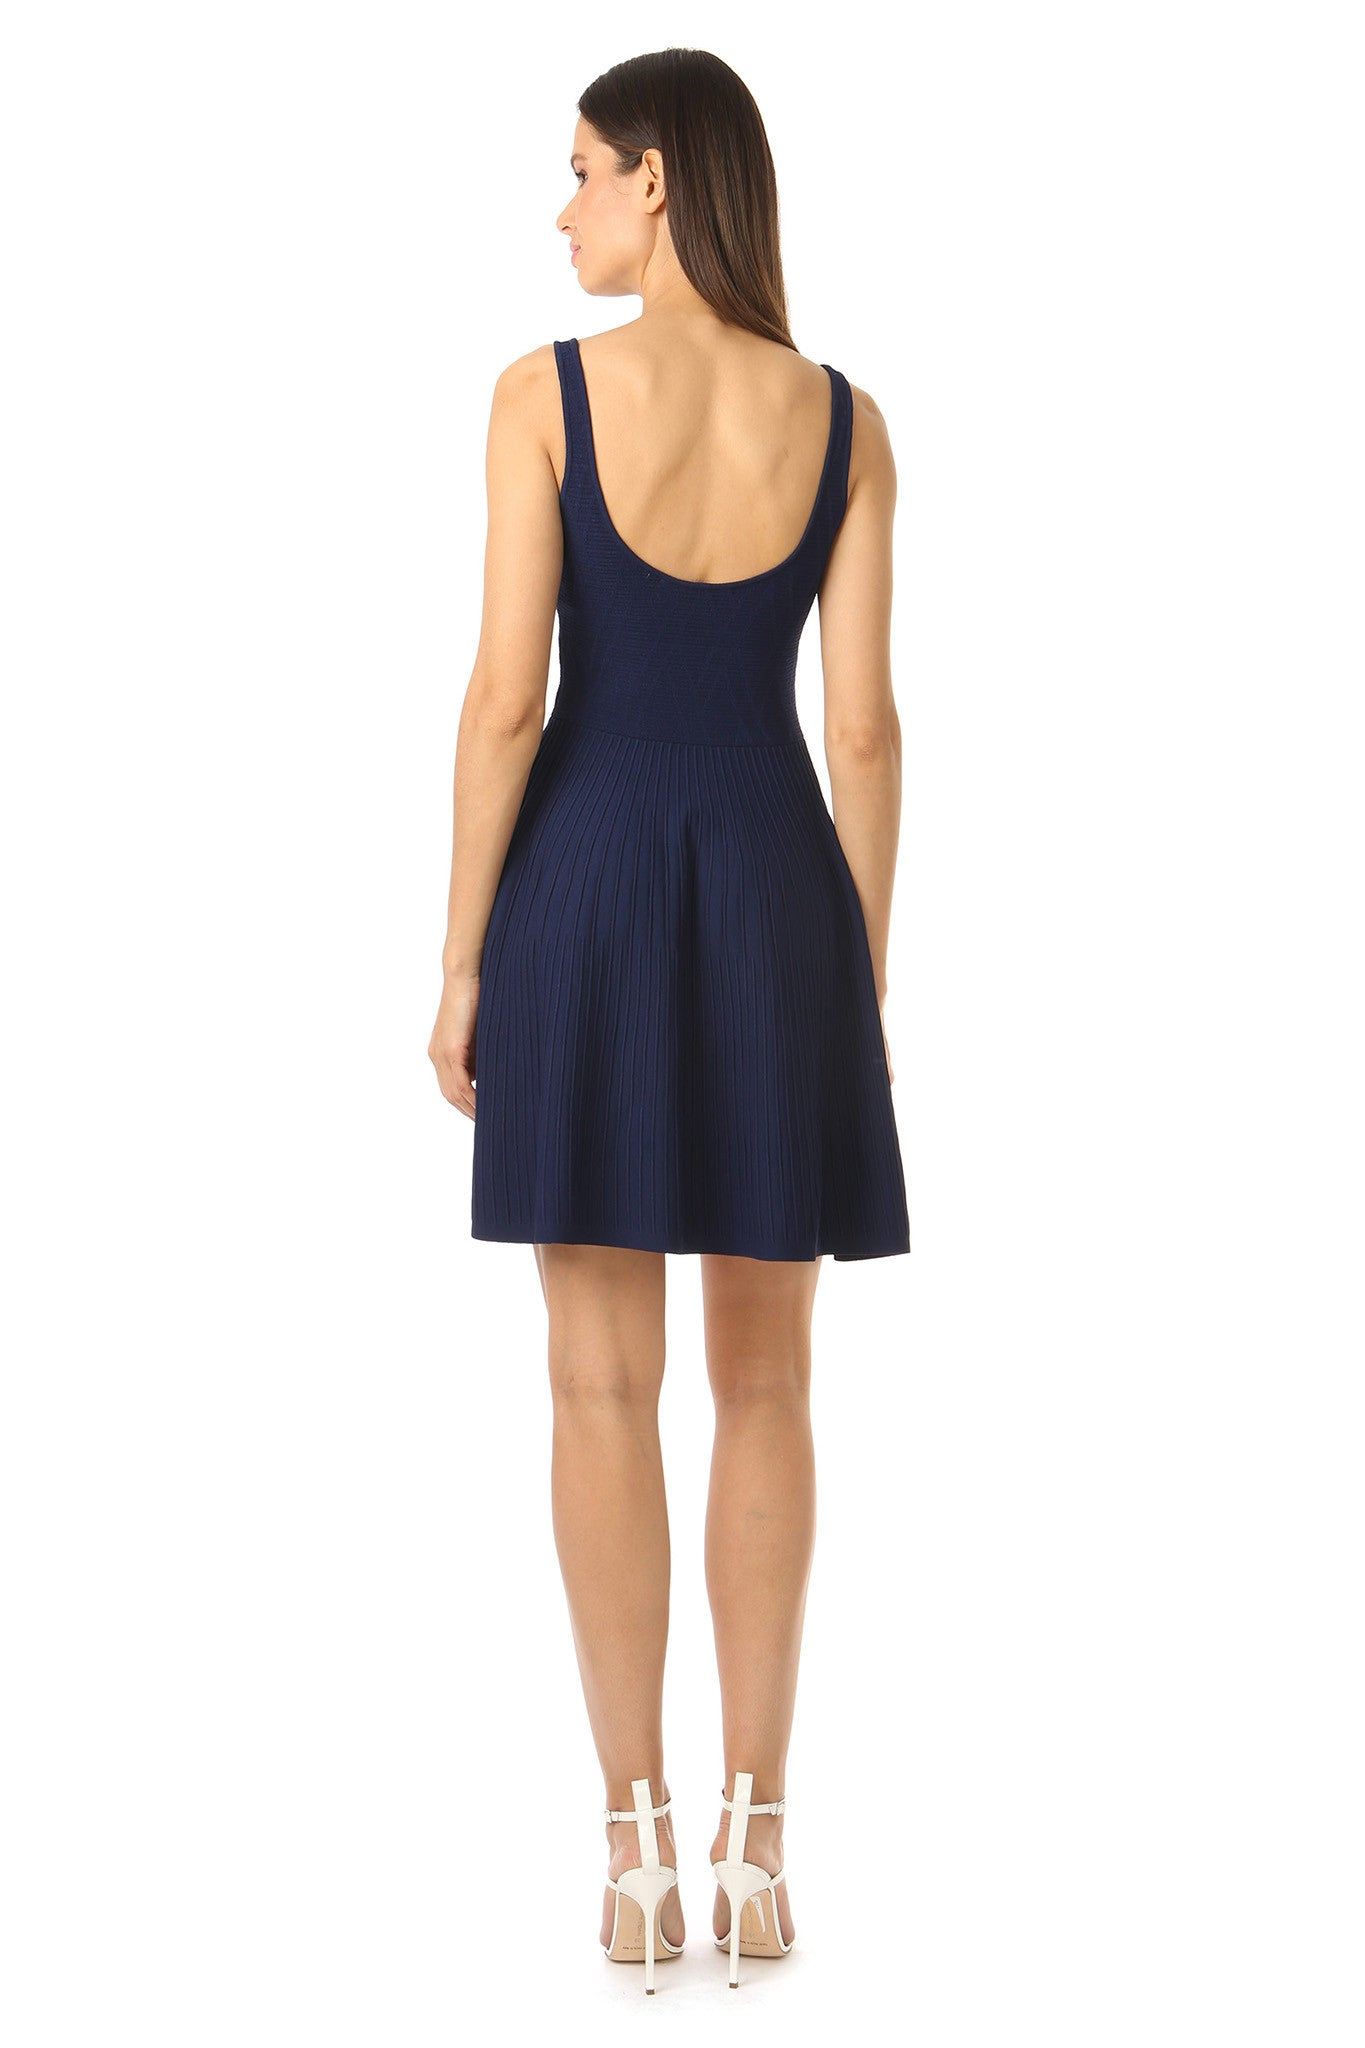 Jay Godfrey Knit Navy Fit and Flare Dress - Back View